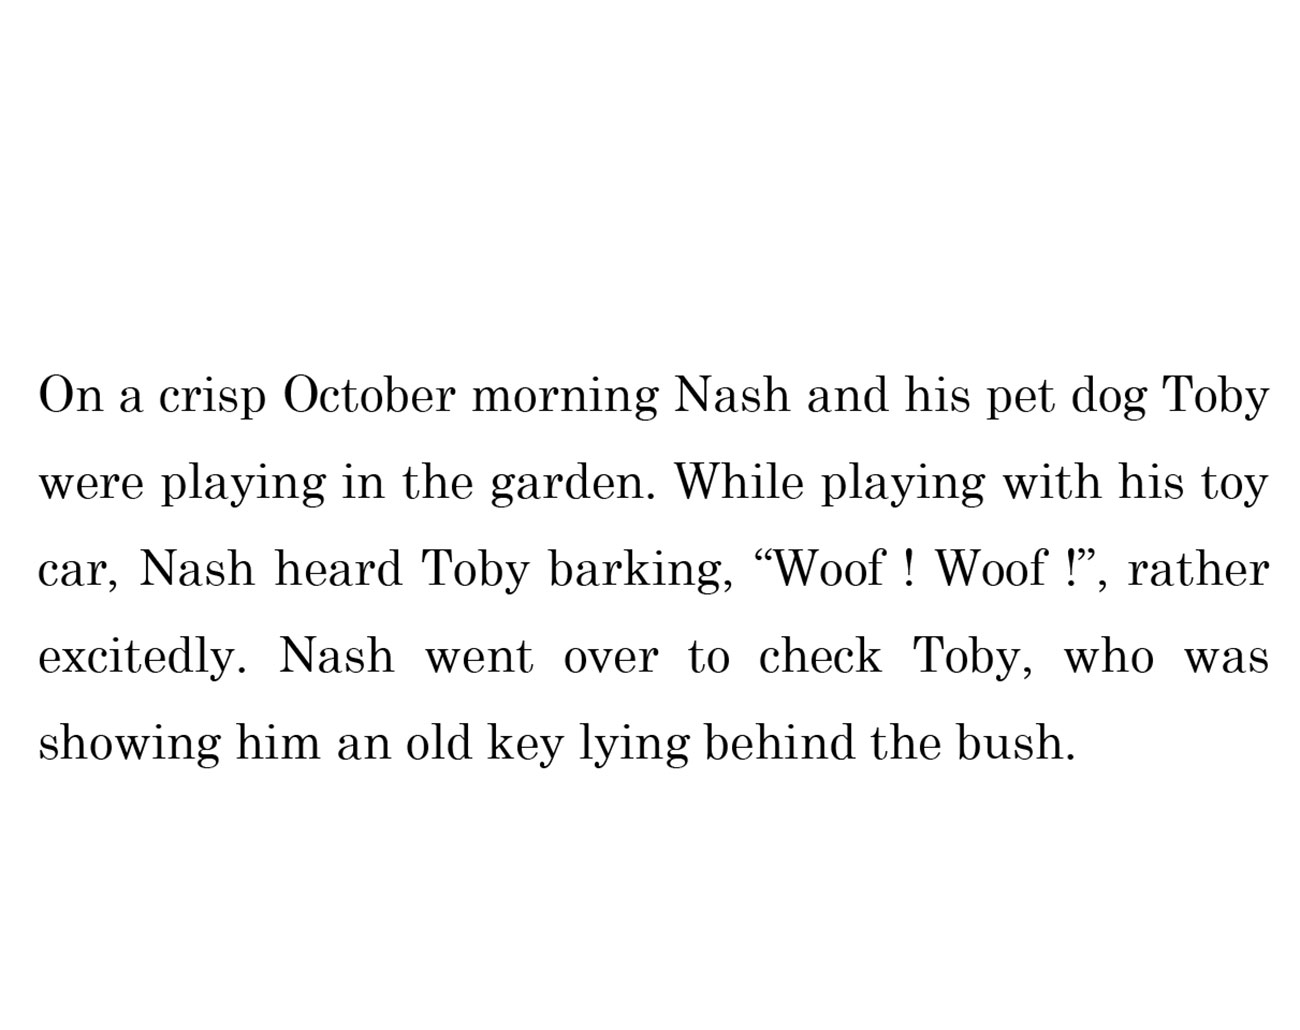 kids short story 'Down the memory lane with nash' by uma bala devarakonda - page 4